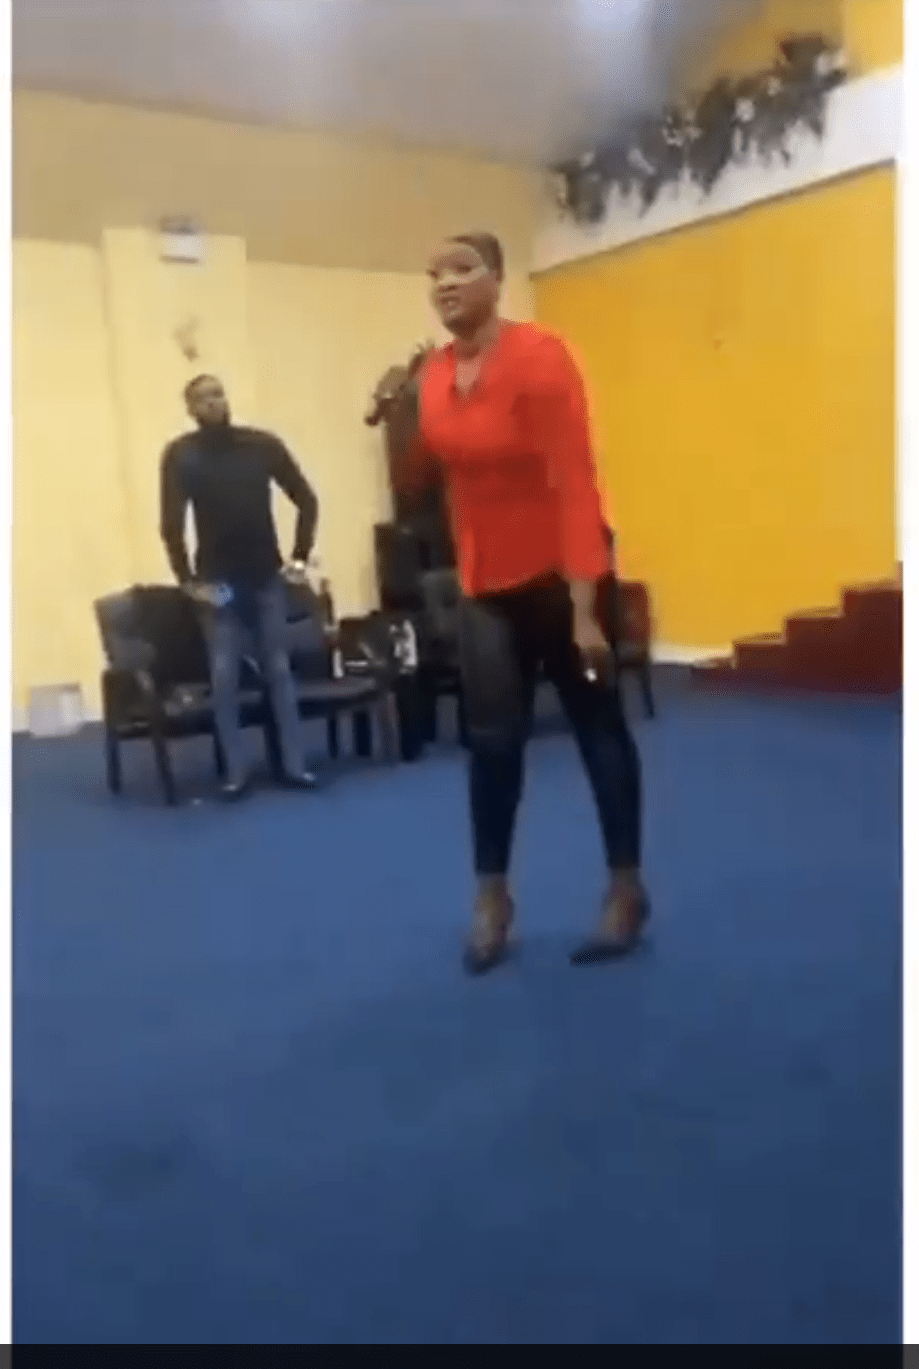 Pastor place Curses on Members over Birthday Contribution